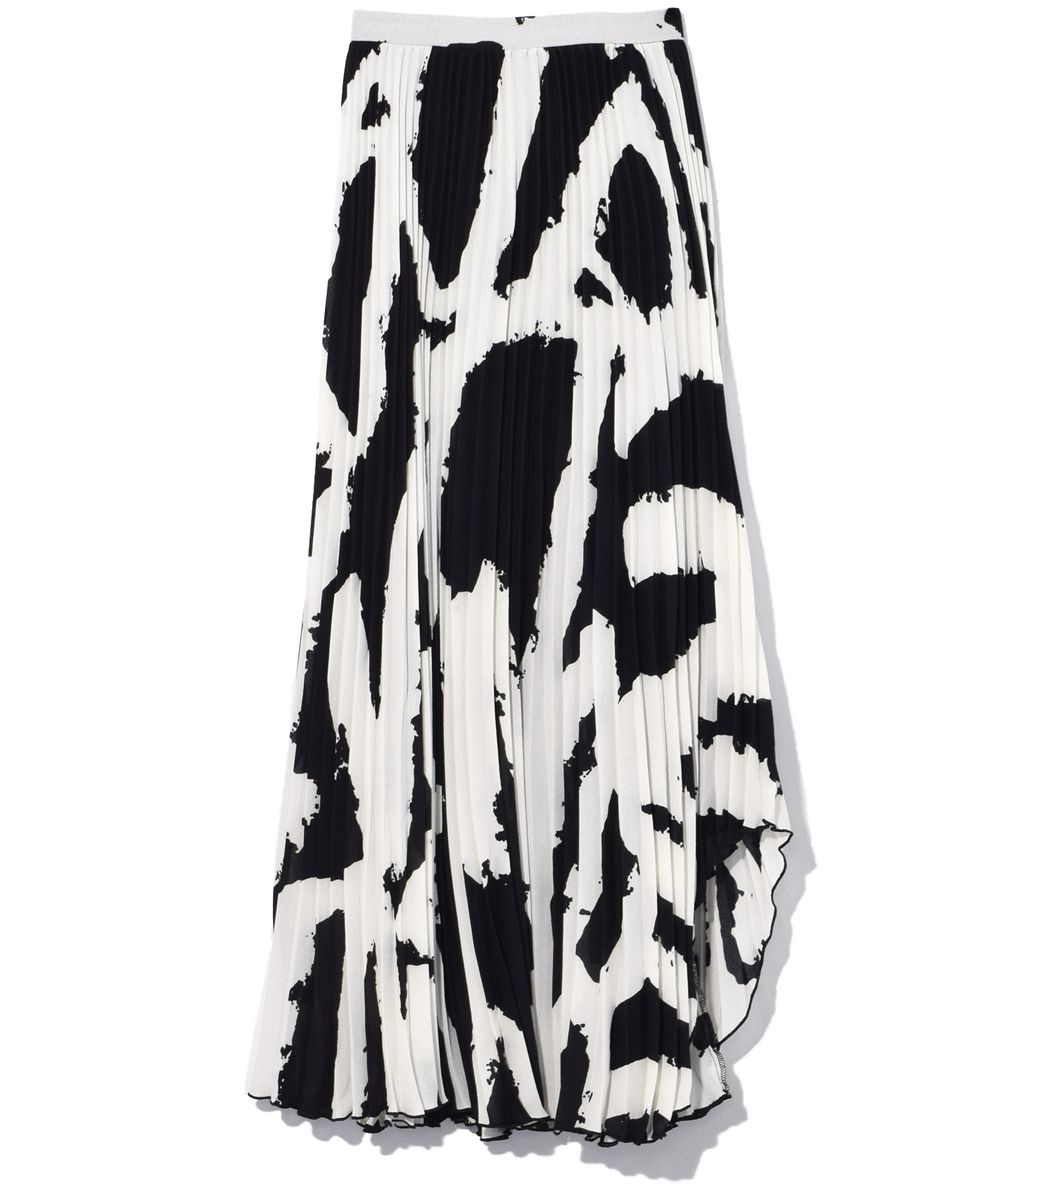 63ba0aa0b3 PROENZA-SCHOULER Black/White Pleated Skirt with Arched Hem. #proenza- schouler #cloth #